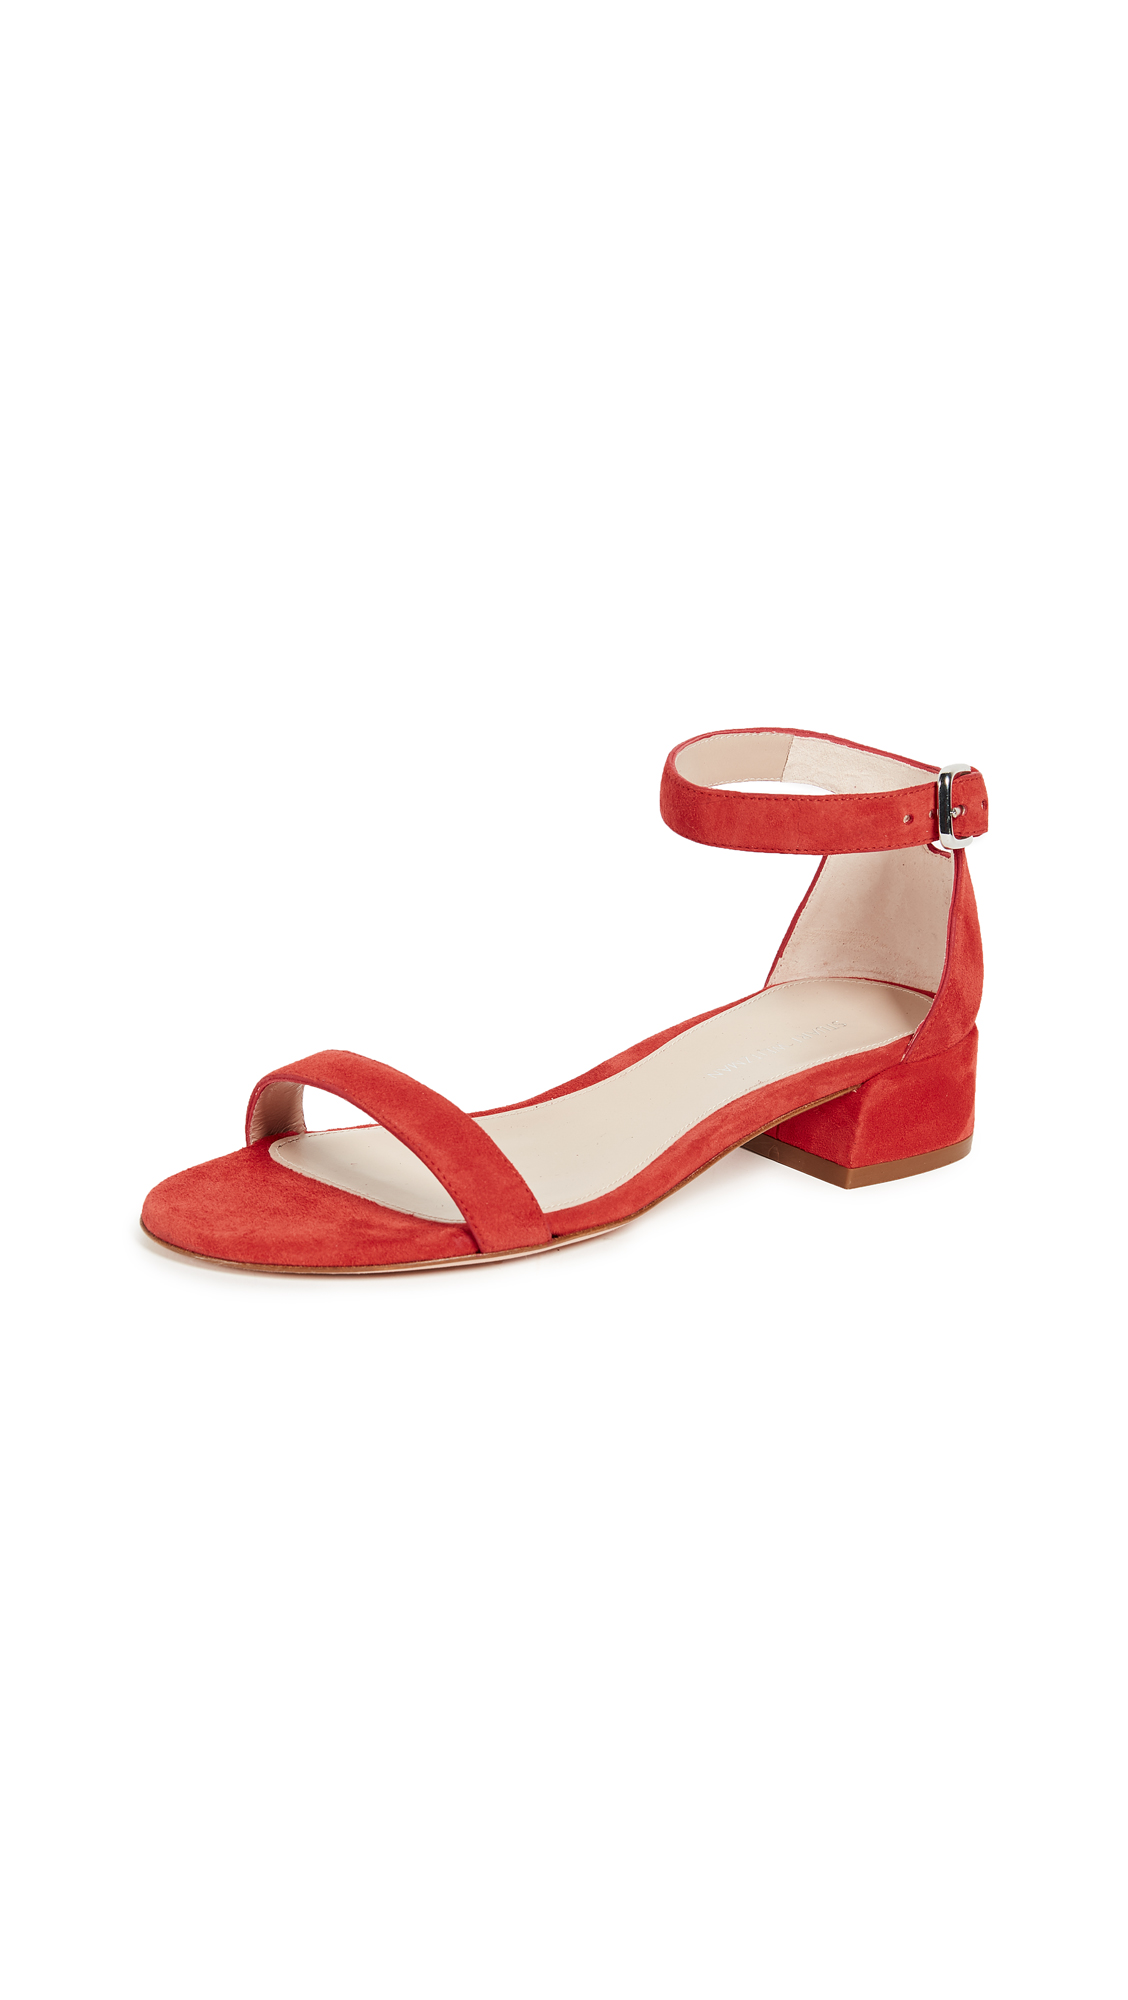 Stuart Weitzman Nudist June City Sandals - Pimento